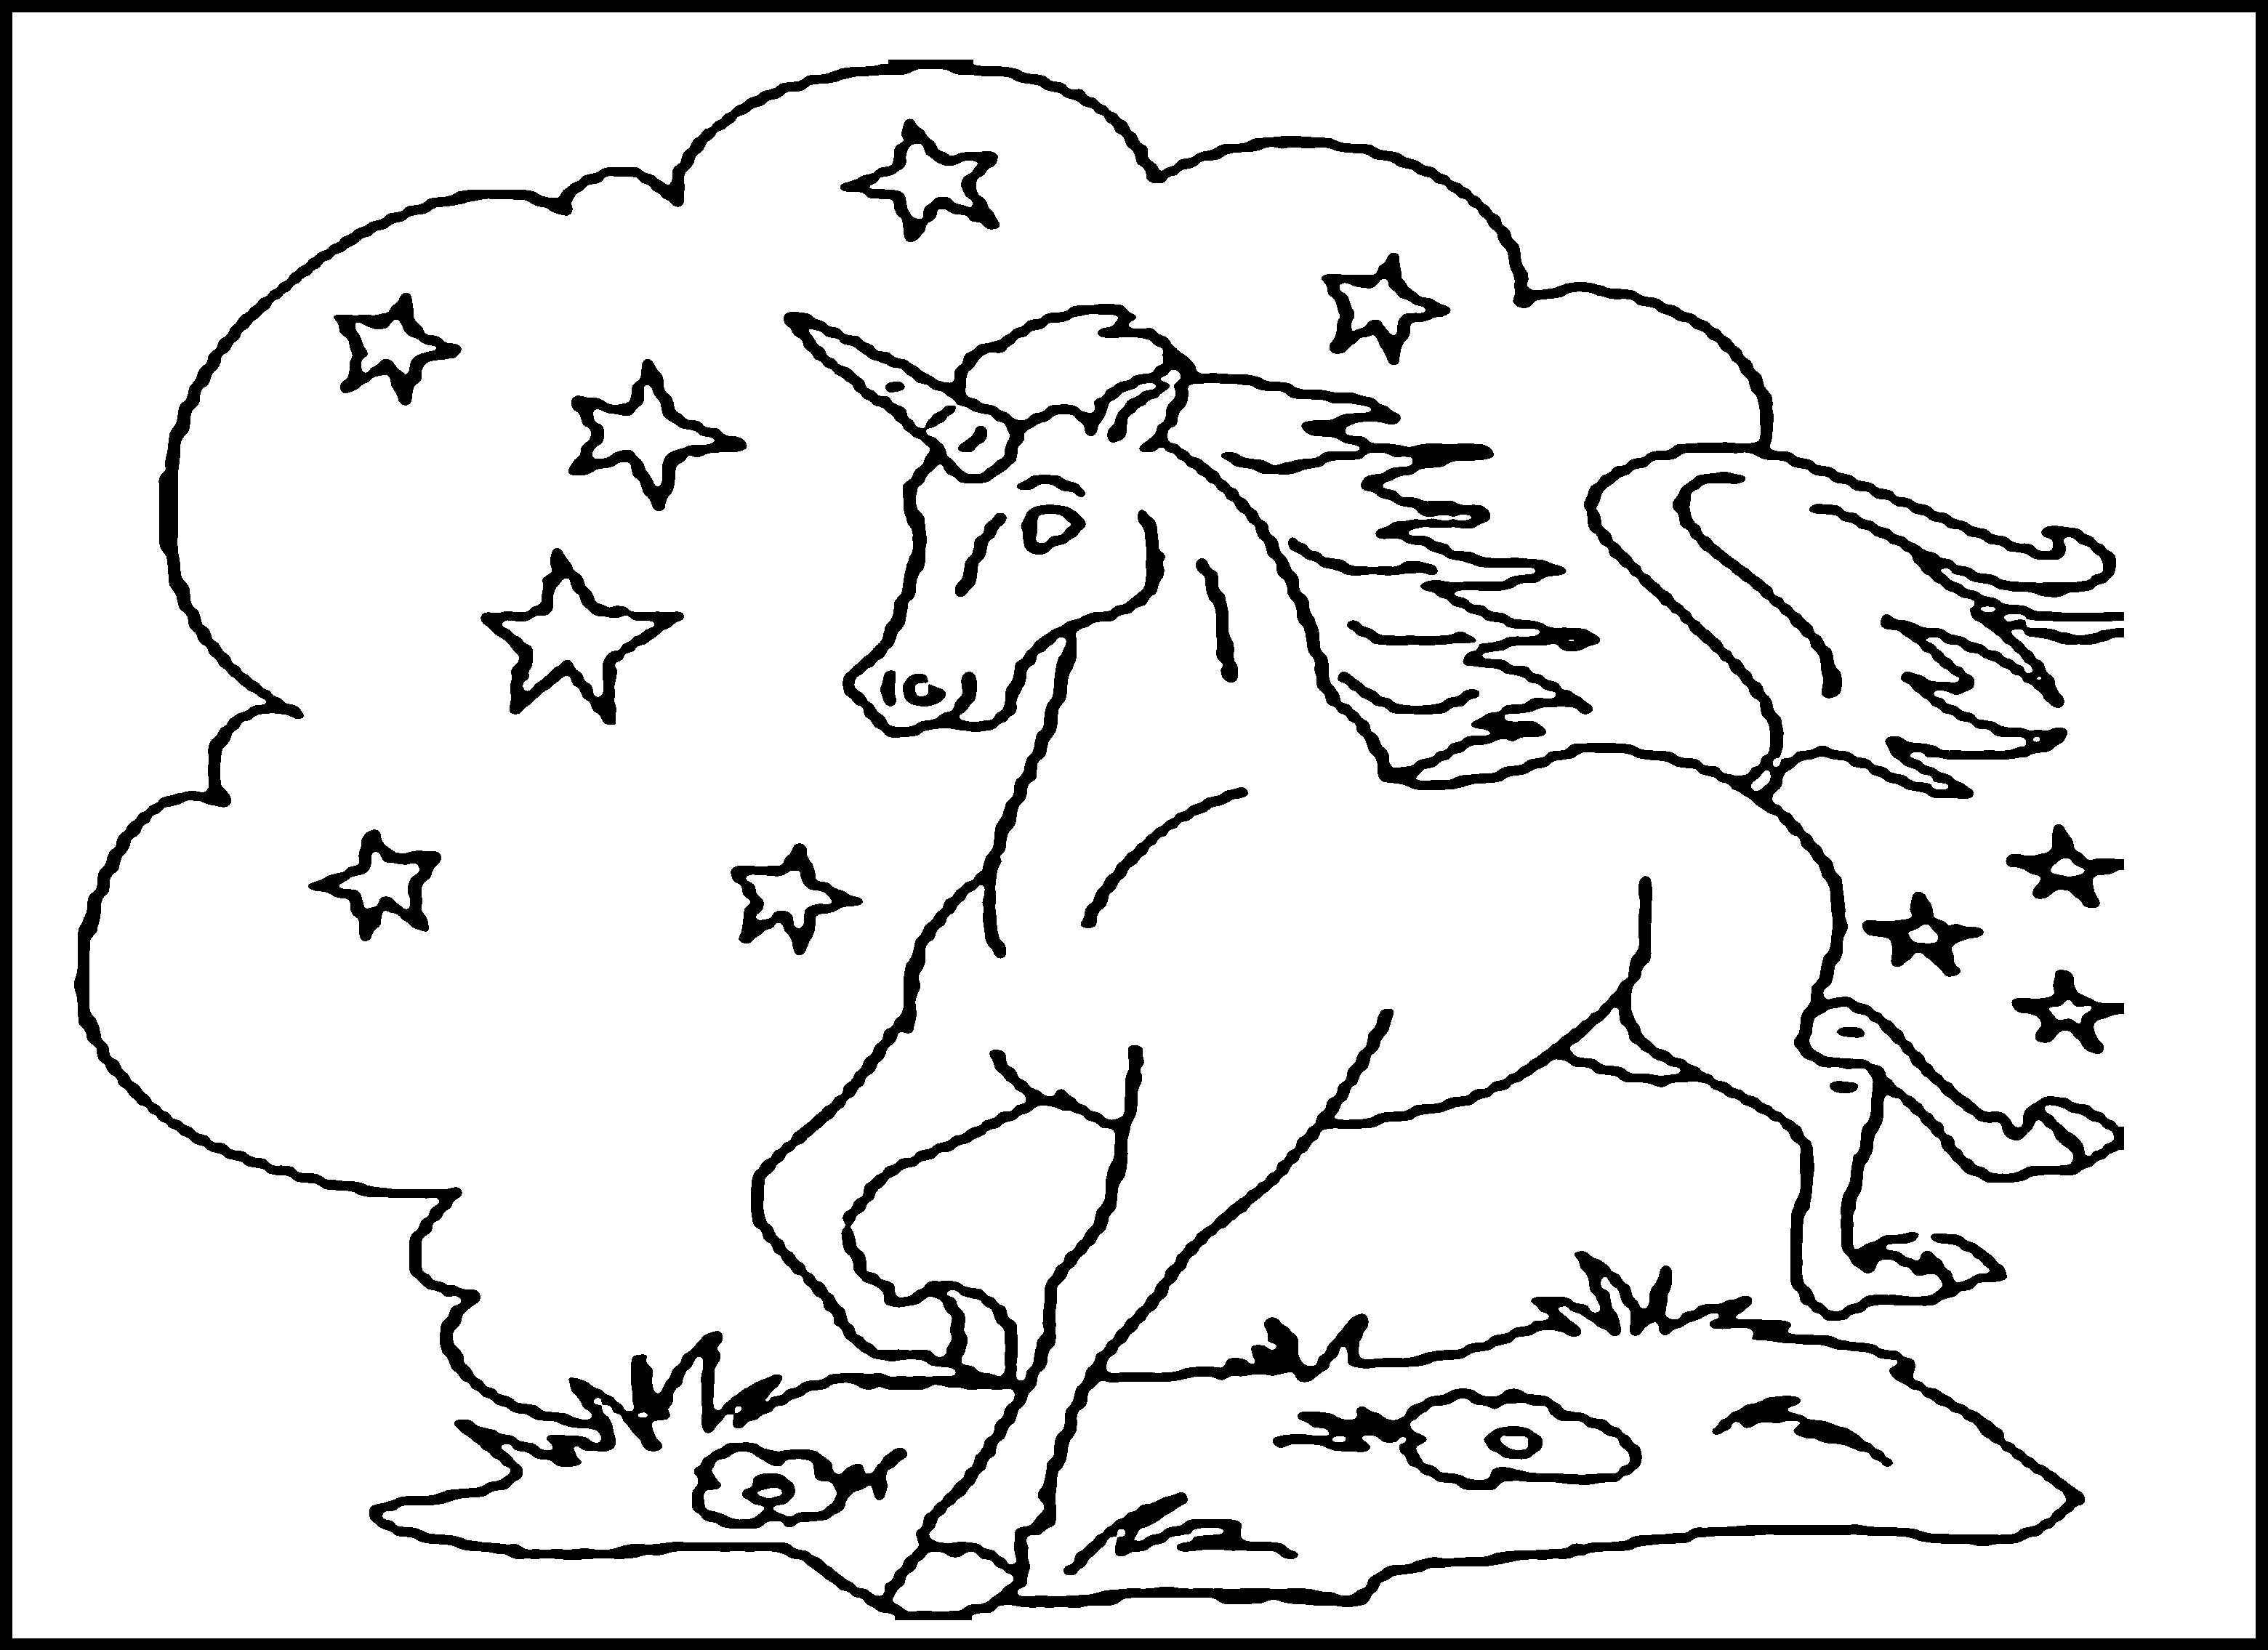 3120x2270 Cool Coloring Pages To Print Get Bubbles